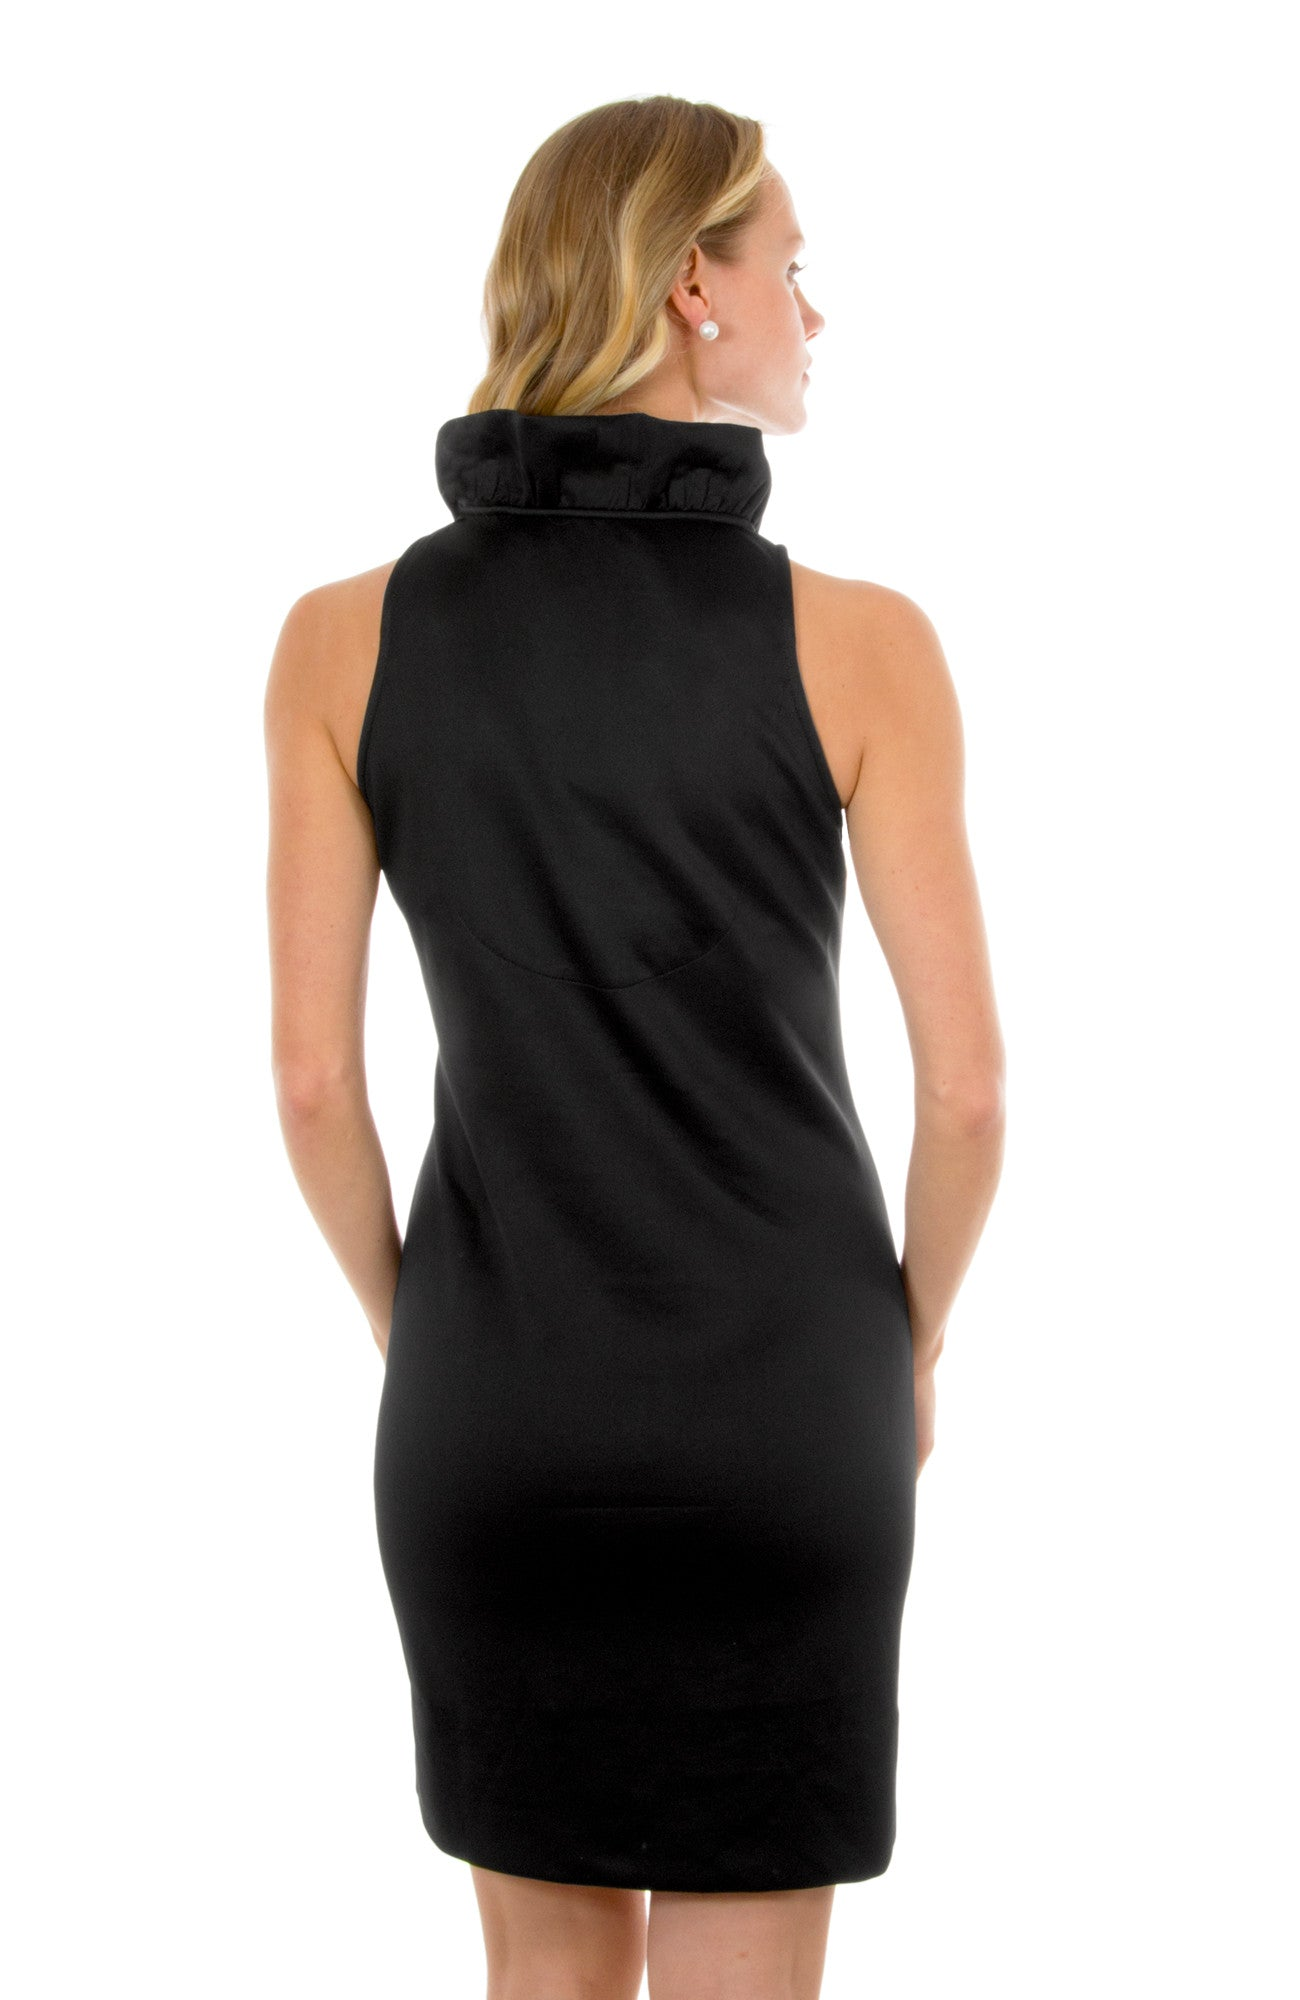 Gretchen Scott Ruff Neck Sleeveless Jersey Dress - Solid Black